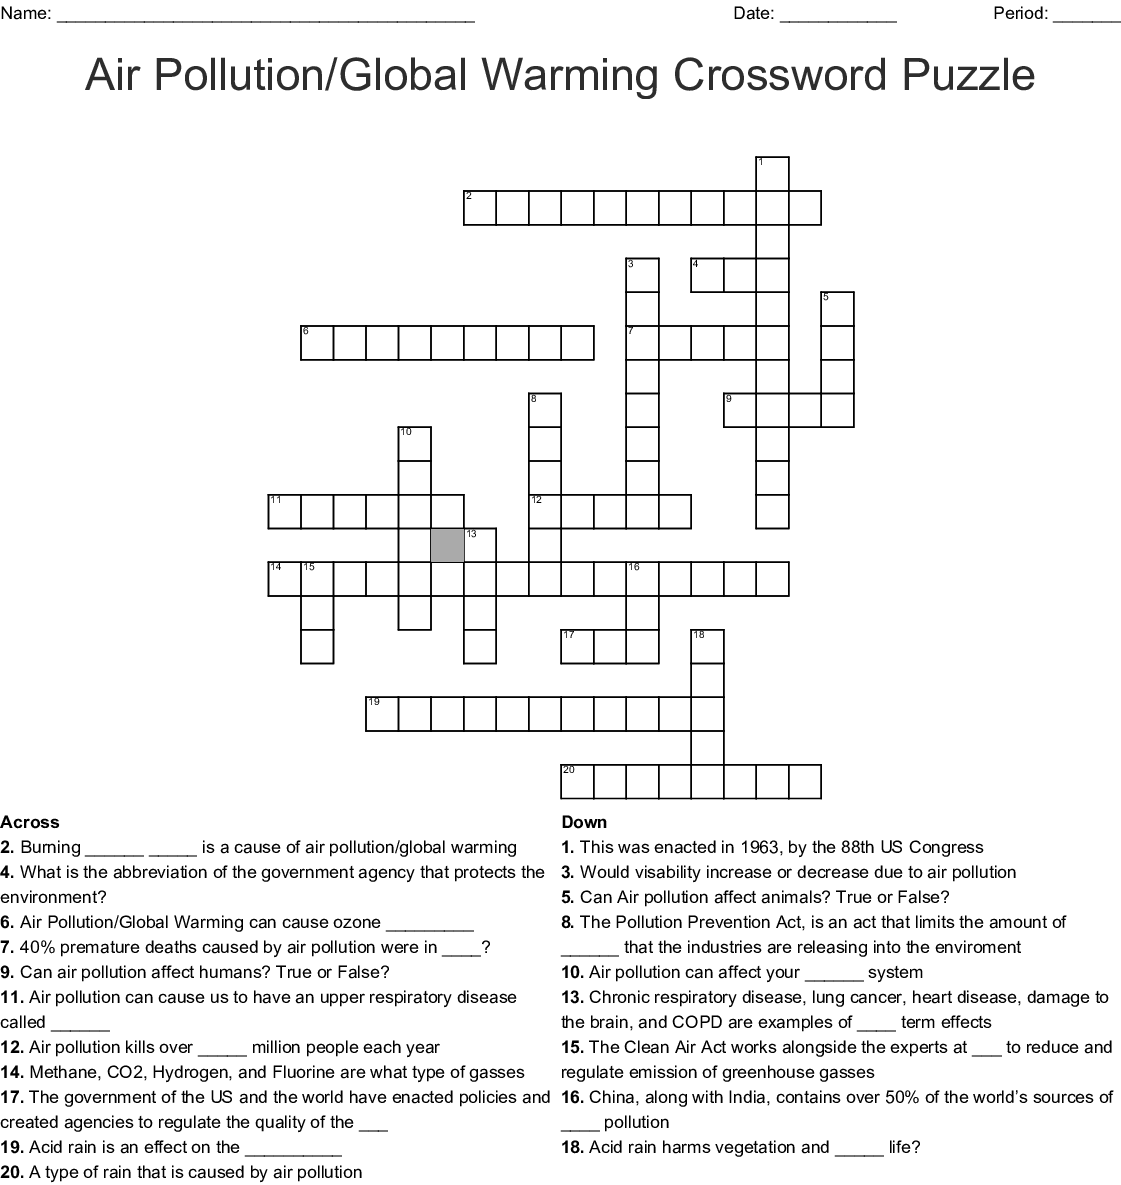 Physical Science Vocabulary Crossword Puzzle